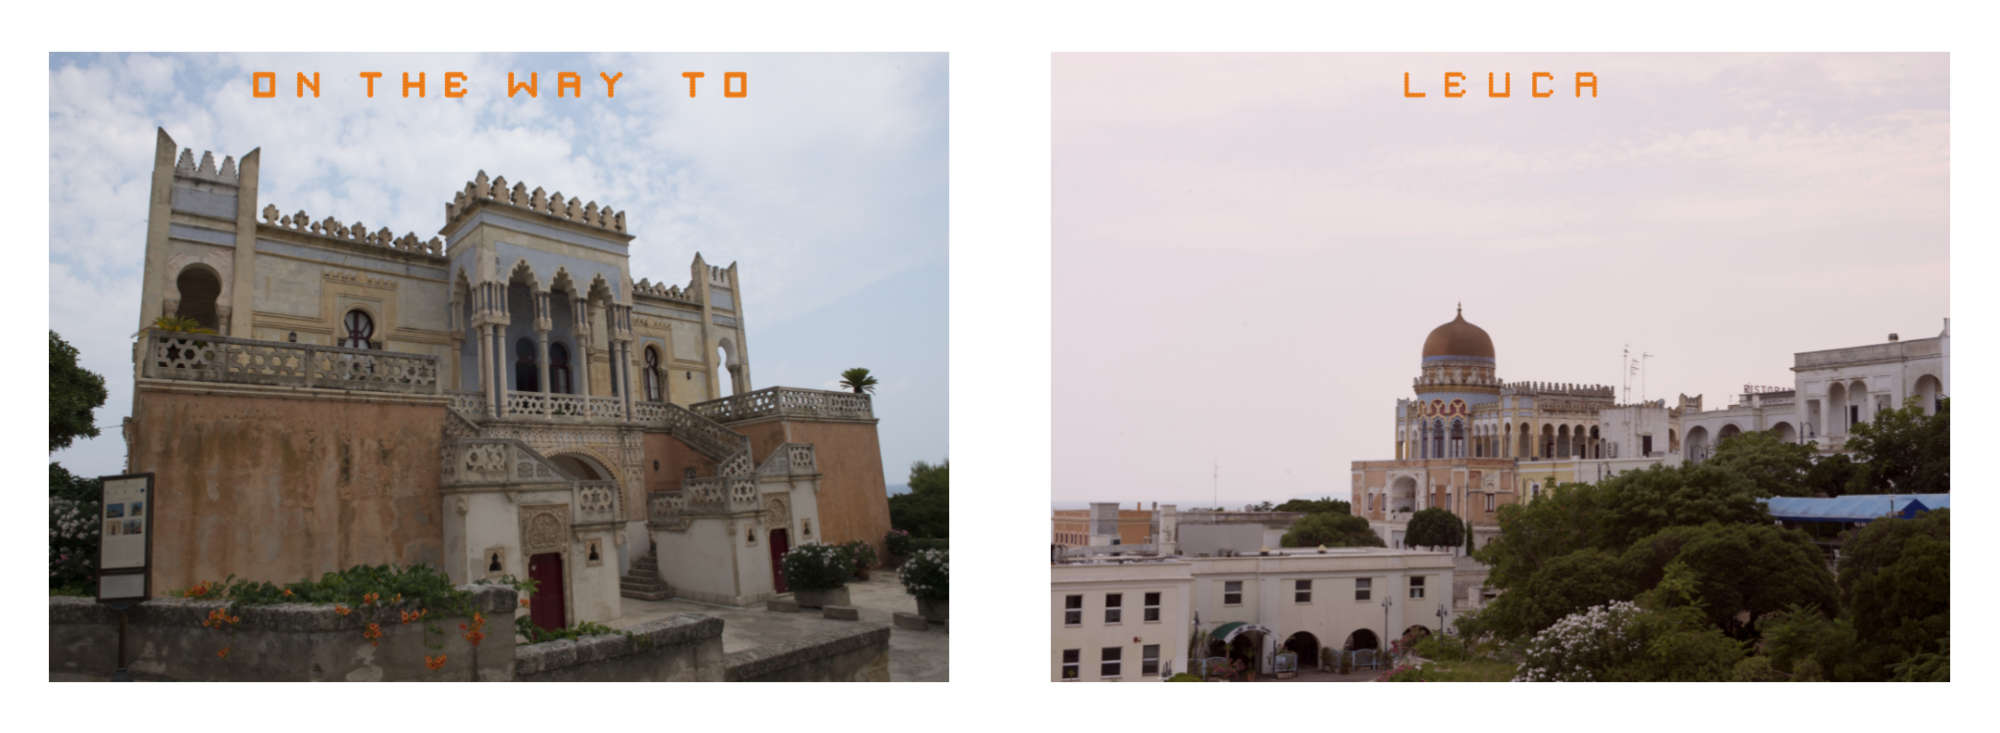 Puglia Album - PPages 16-17:  Luca and its antique monuments